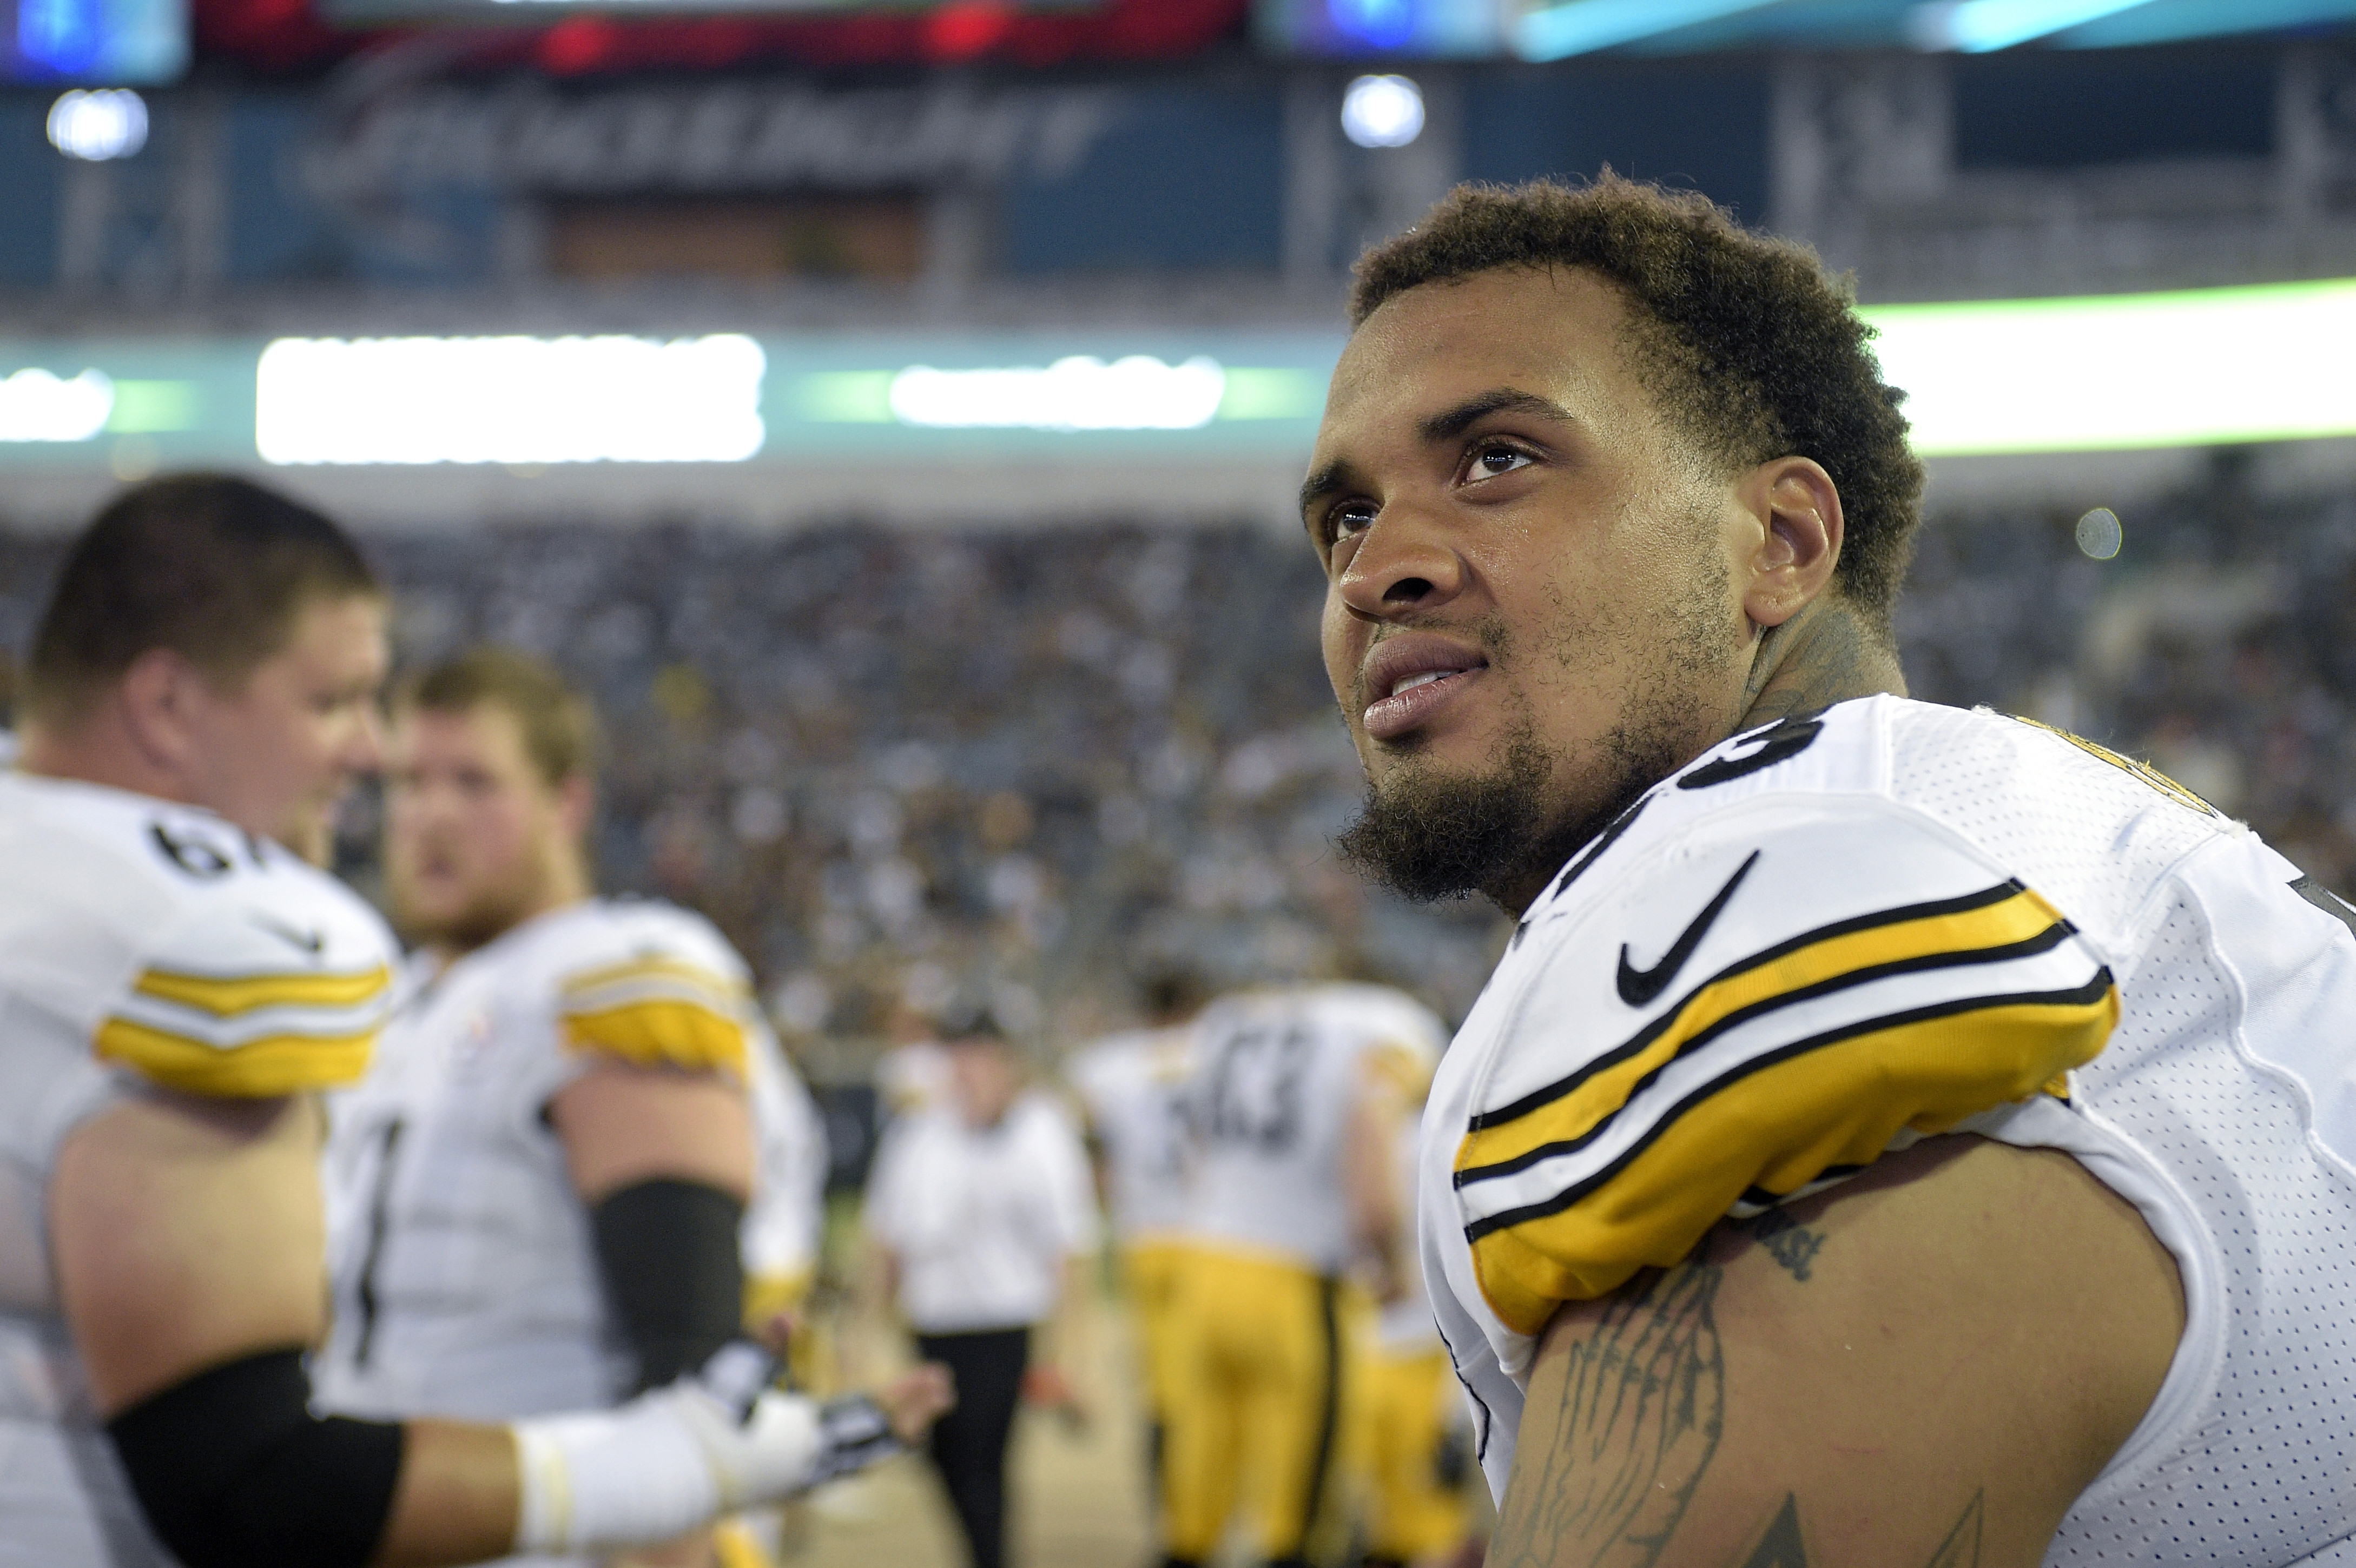 Pittsburgh Steelers center Maurkice Pouncey, right, watches from the bench during the first half of an NFL preseason football game against the Jacksonville Jaguars in Jacksonville, Fla., Friday, Aug. 14, 2015. (AP Photo/Phelan M. Ebenhack)